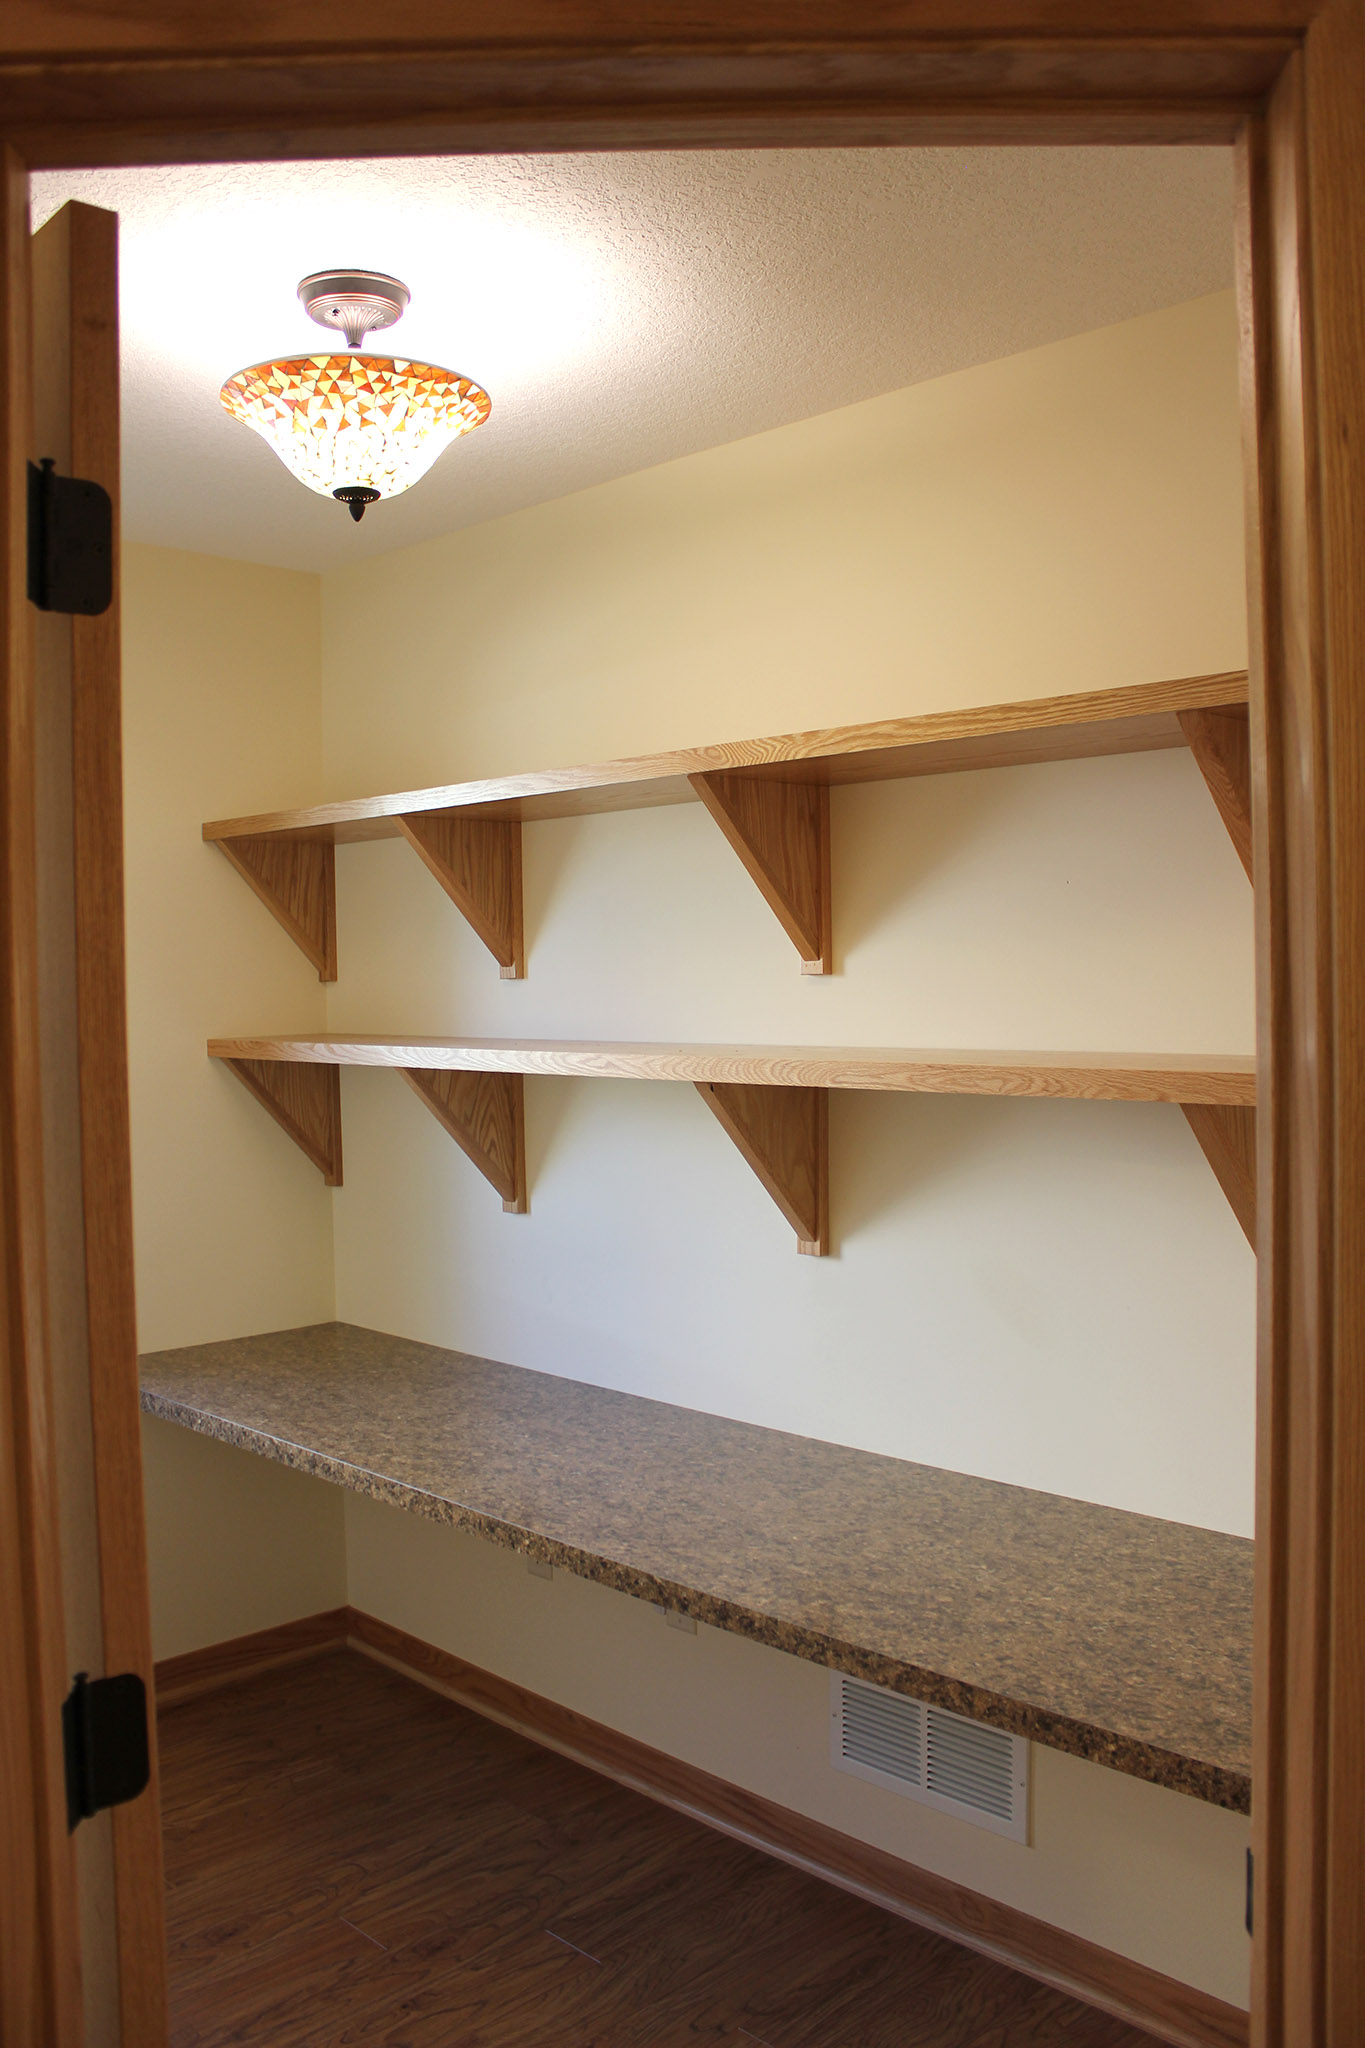 Twin home room with built-in shelving and counter